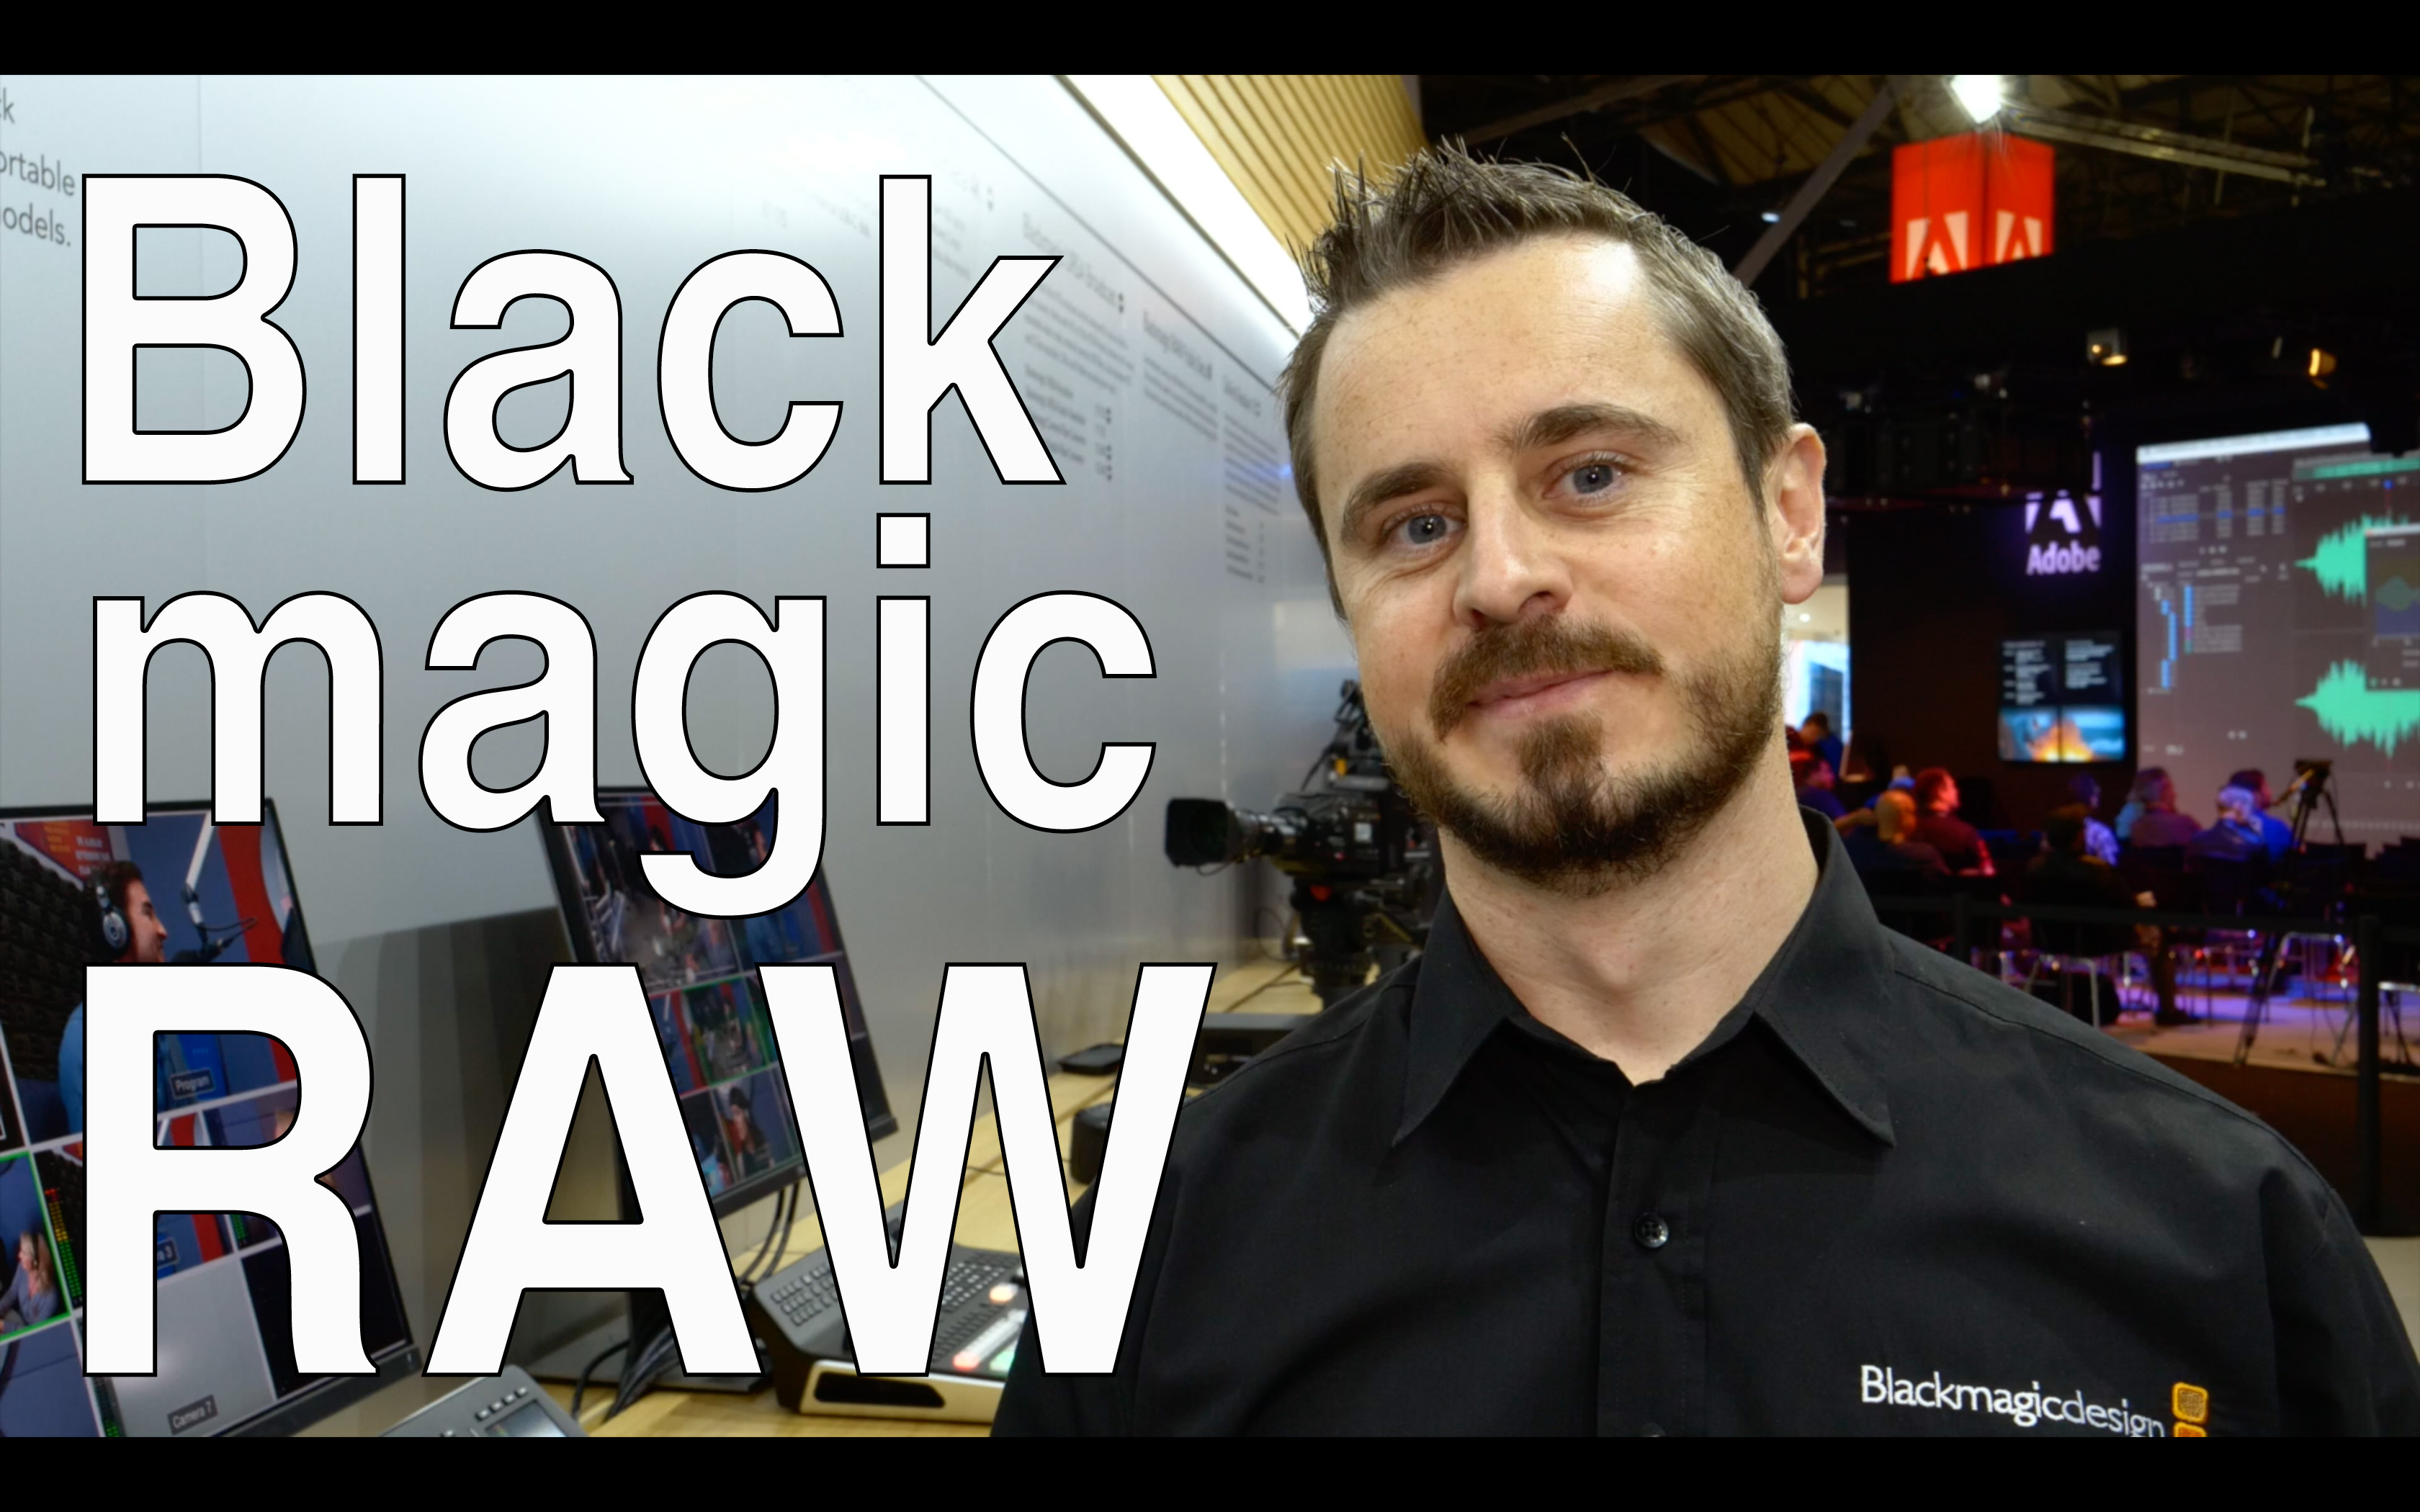 Videointerview: Blackmagic RAW - why better than CDNG RAW? Incl. sidecar file, supported cameras and